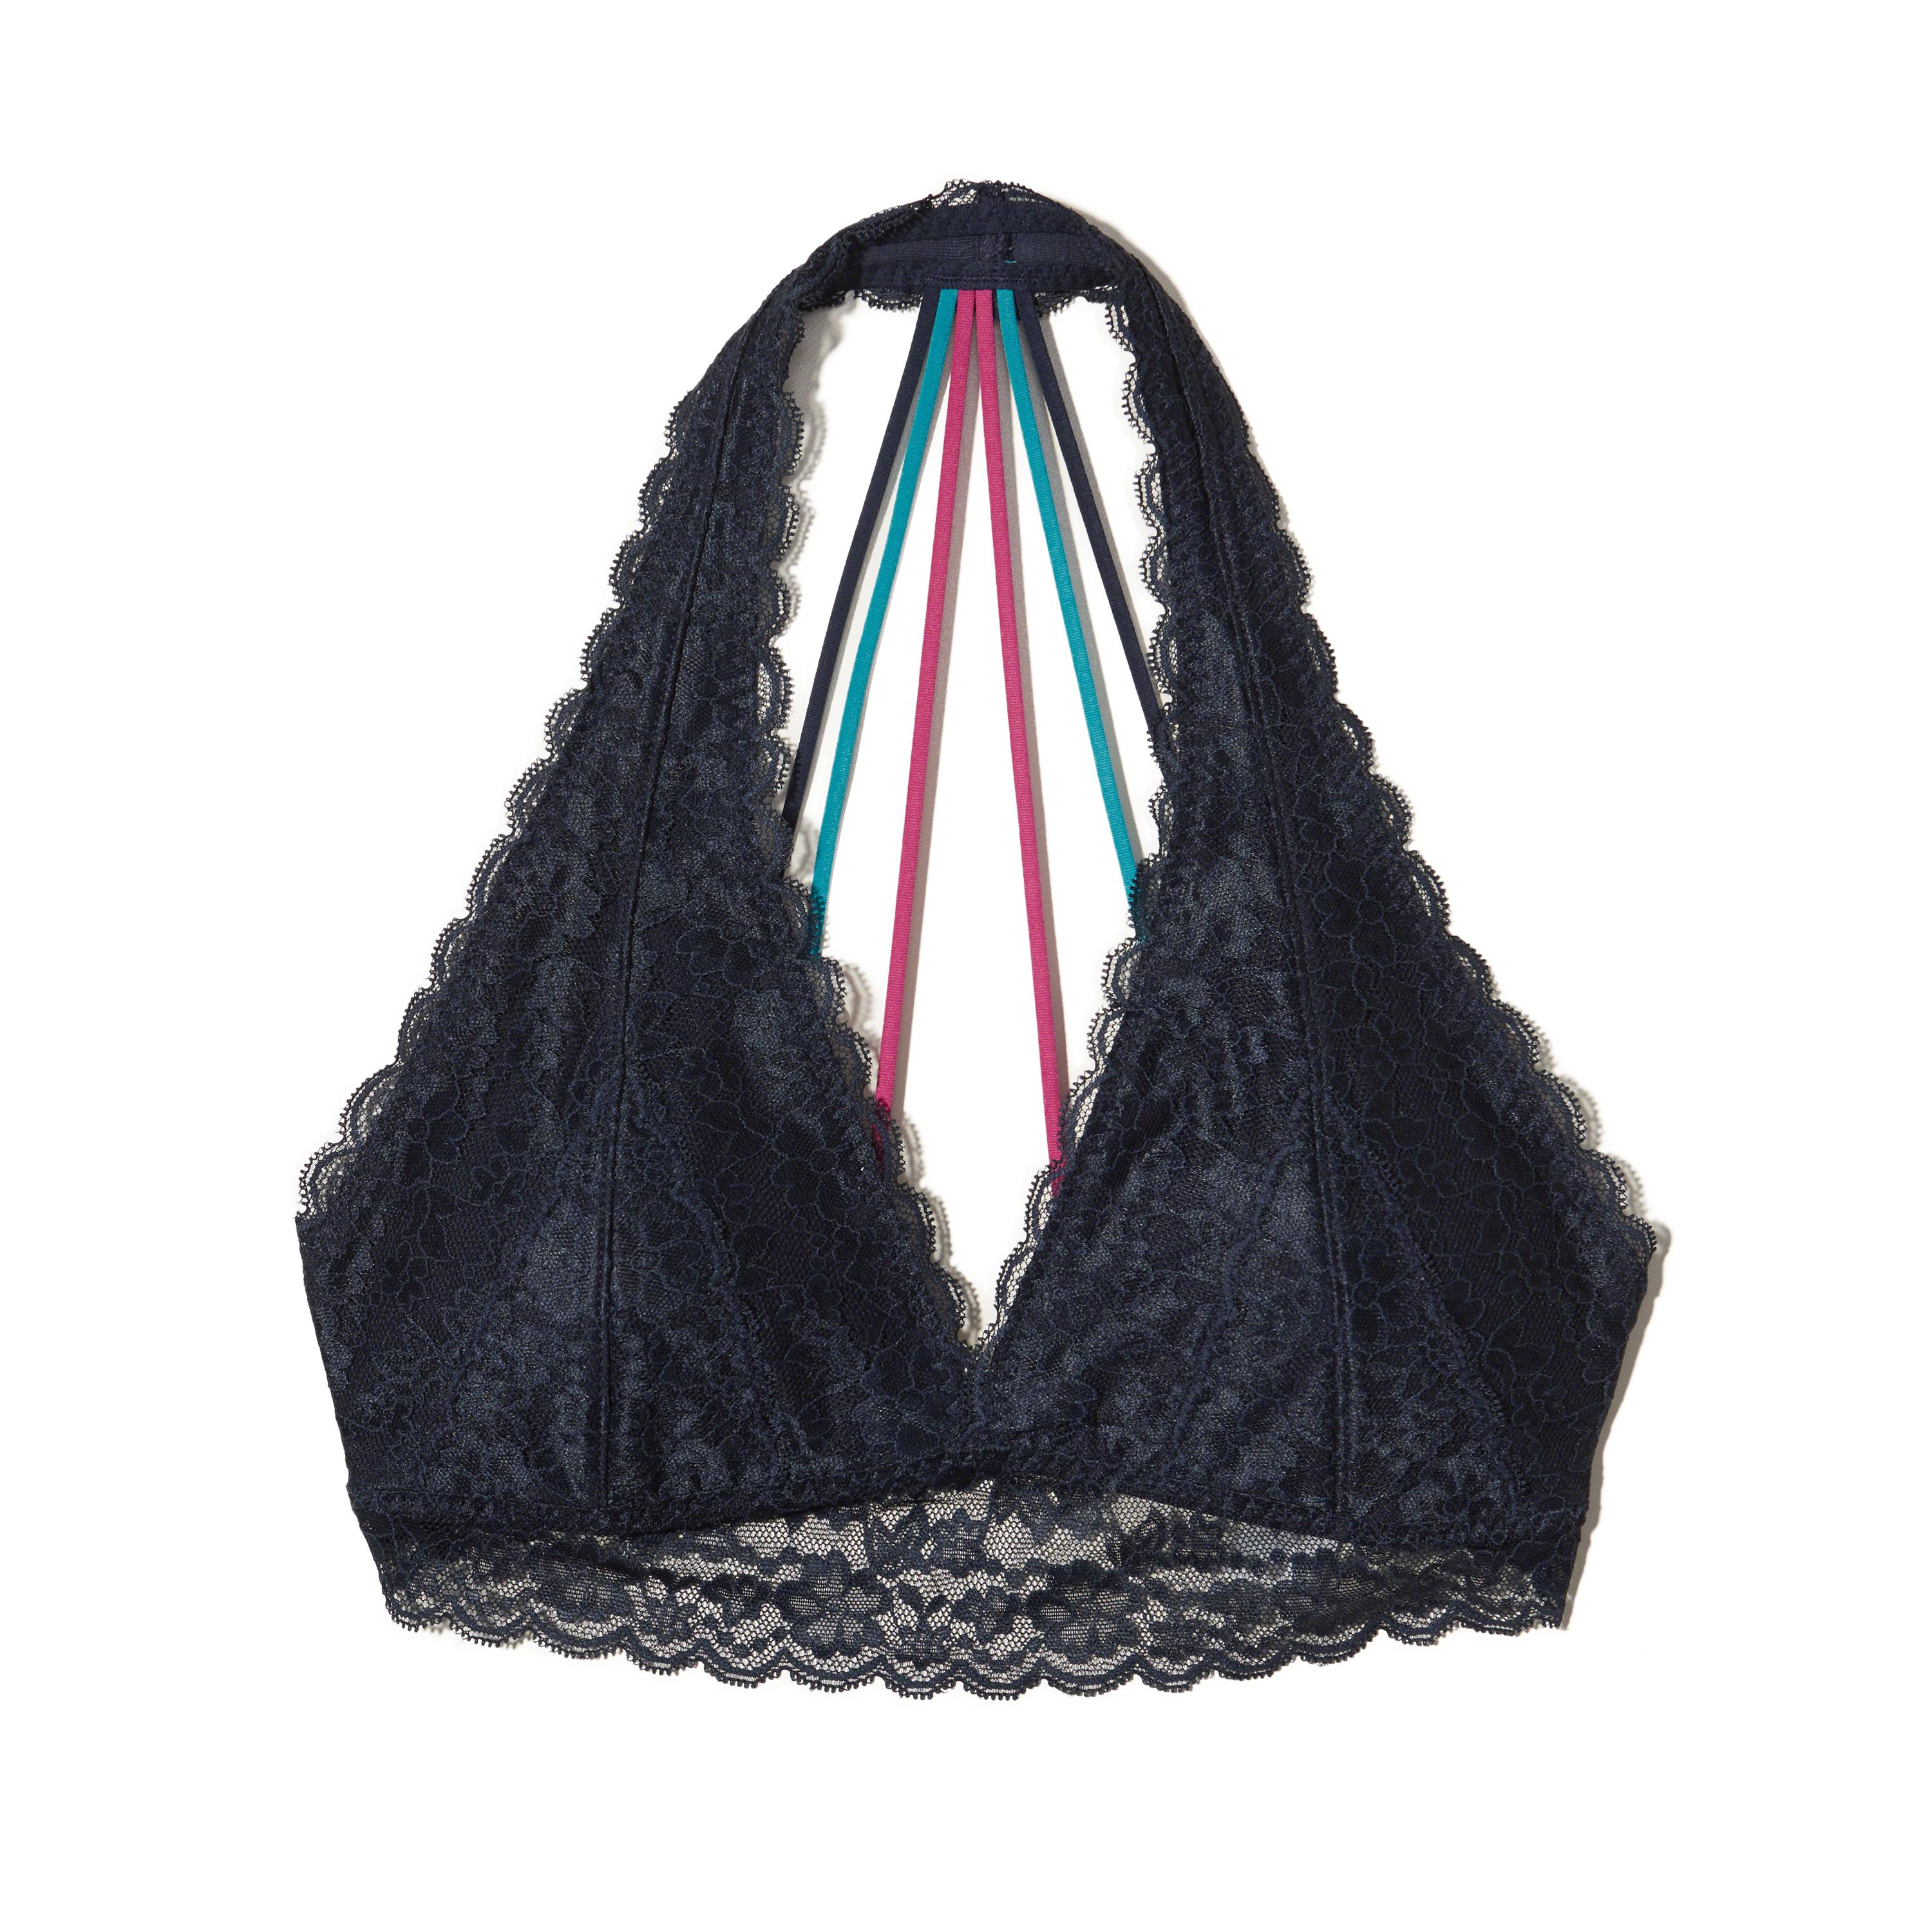 0711d8123b4 Lyst - Hollister Strappy Halter Bralette With Removable Pads in Blue